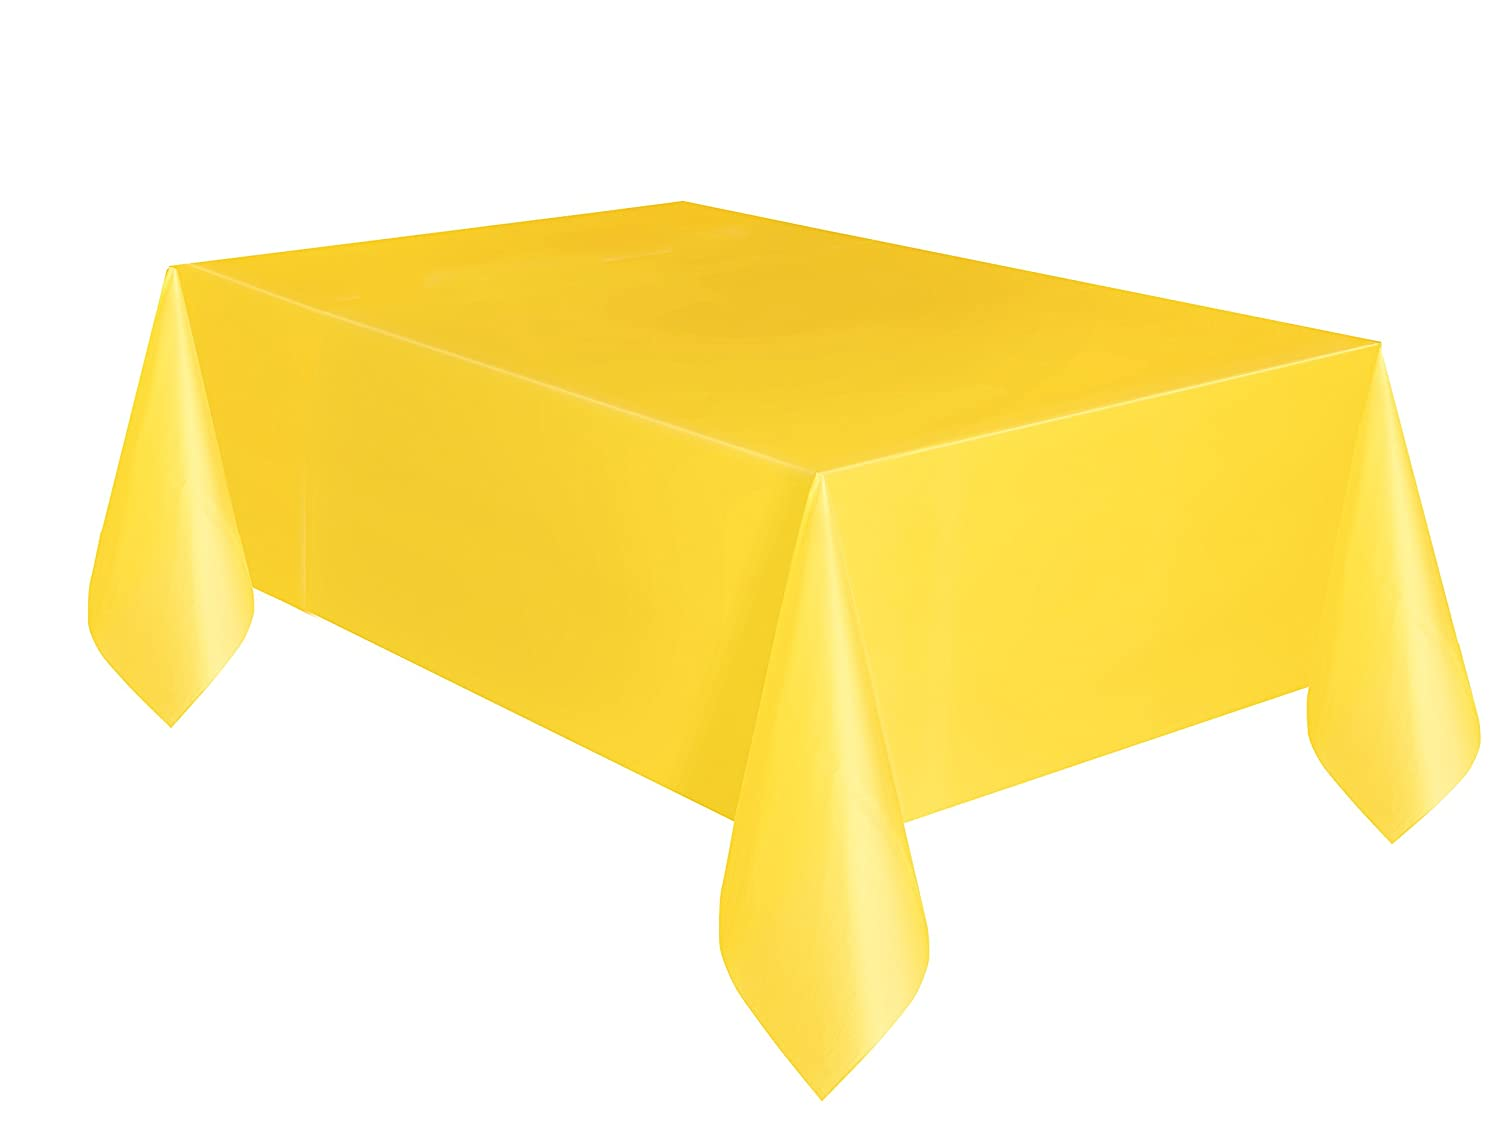 Unique Party 5093 - Yellow Plastic Tablecloth, 9ft x 4.5ft